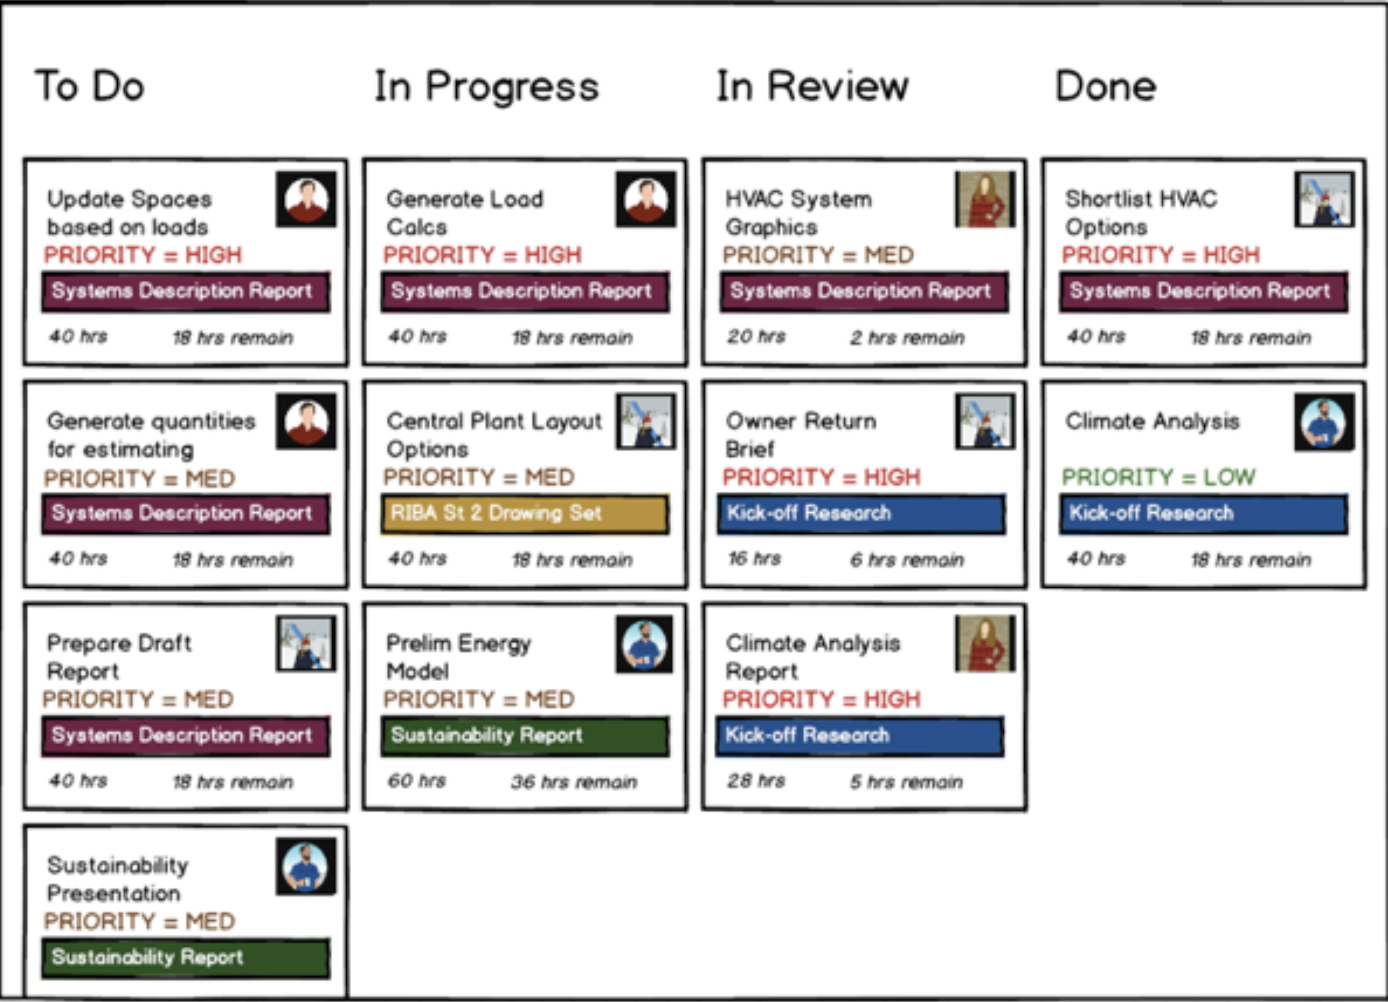 Image illustrating an agile approach to projects